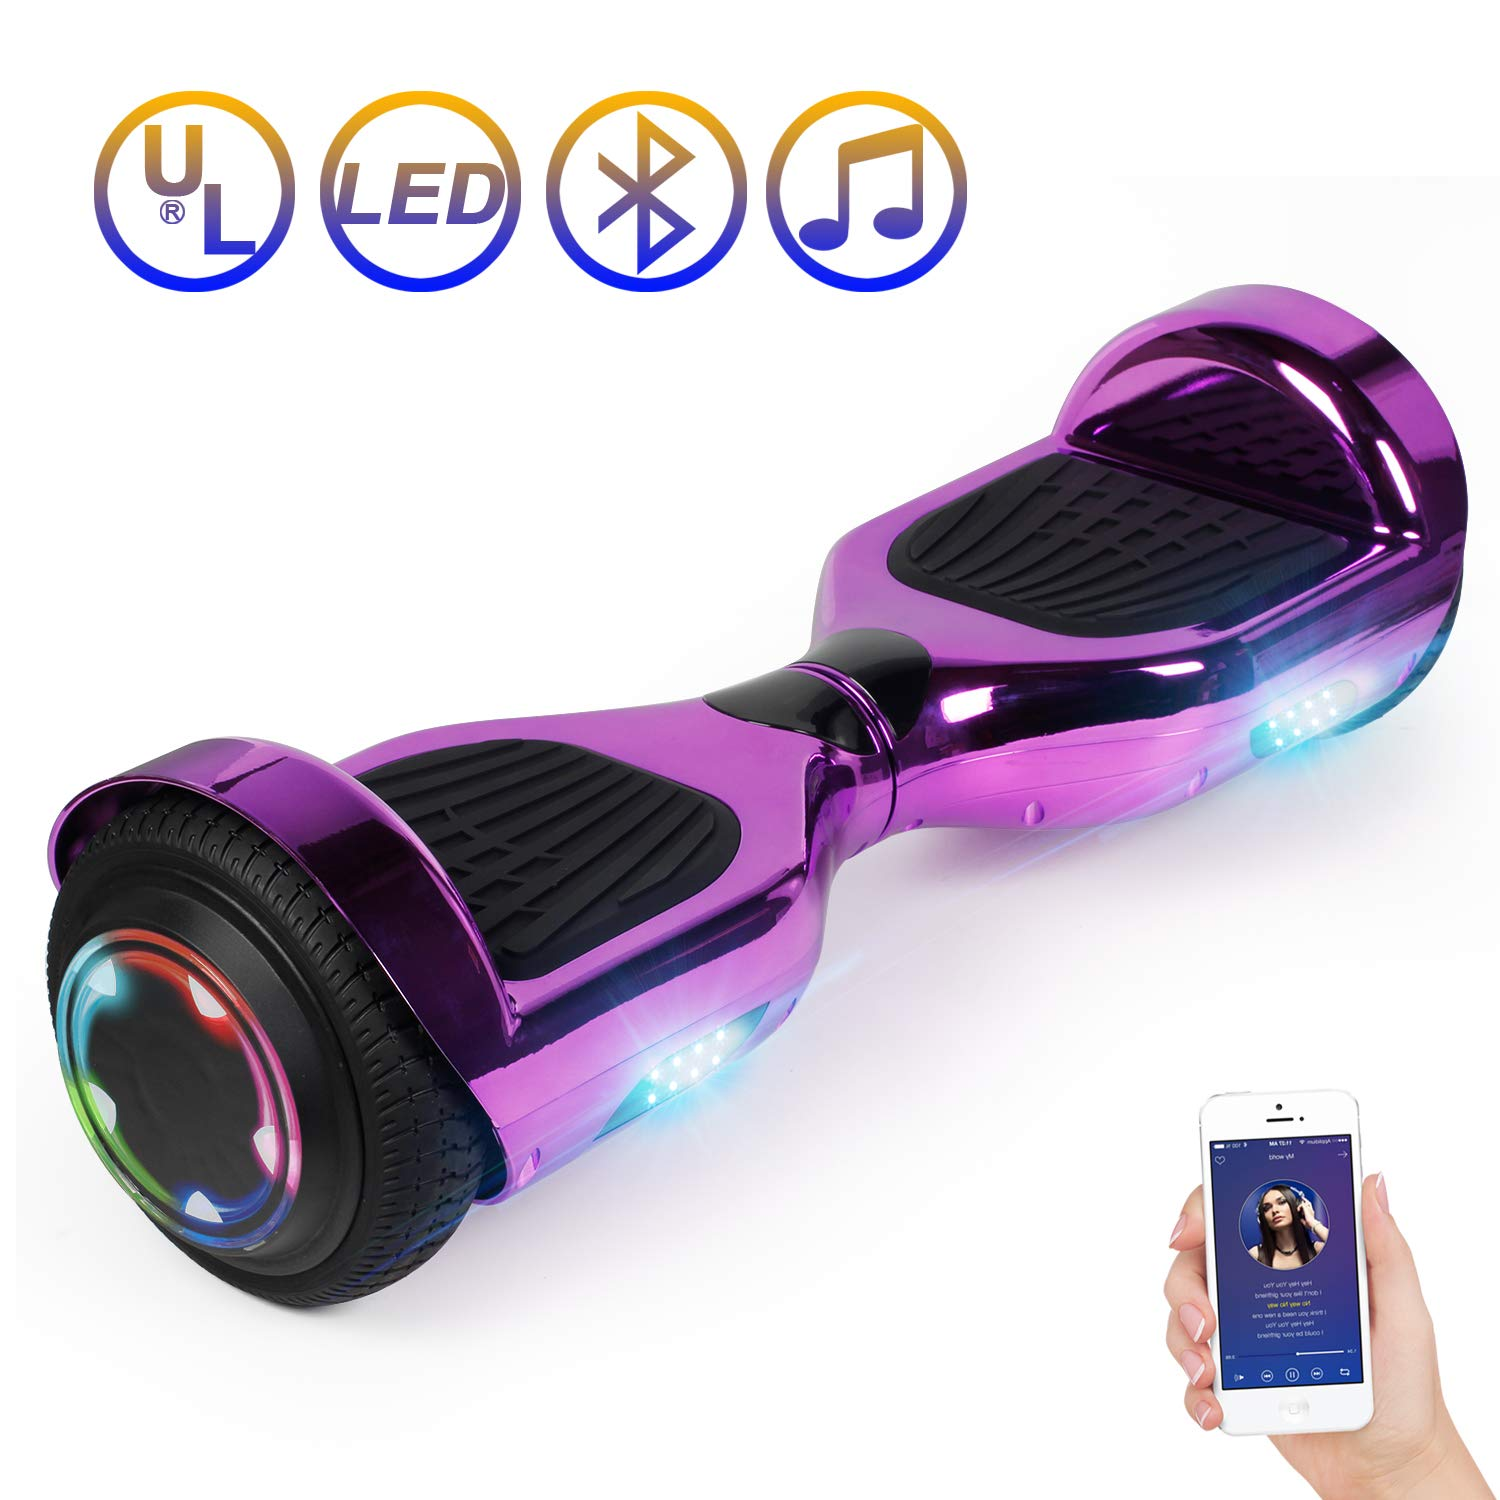 Hoverboard Self Balancing Scooter 6.5'' Two-Wheel Self Balancing Hoverboard with Bluetooth Speaker and LED Lights Electric Scooter for Adult Kids Gift UL 2272 Certified Plating Dazzle U Series - Purple by SISIGAD